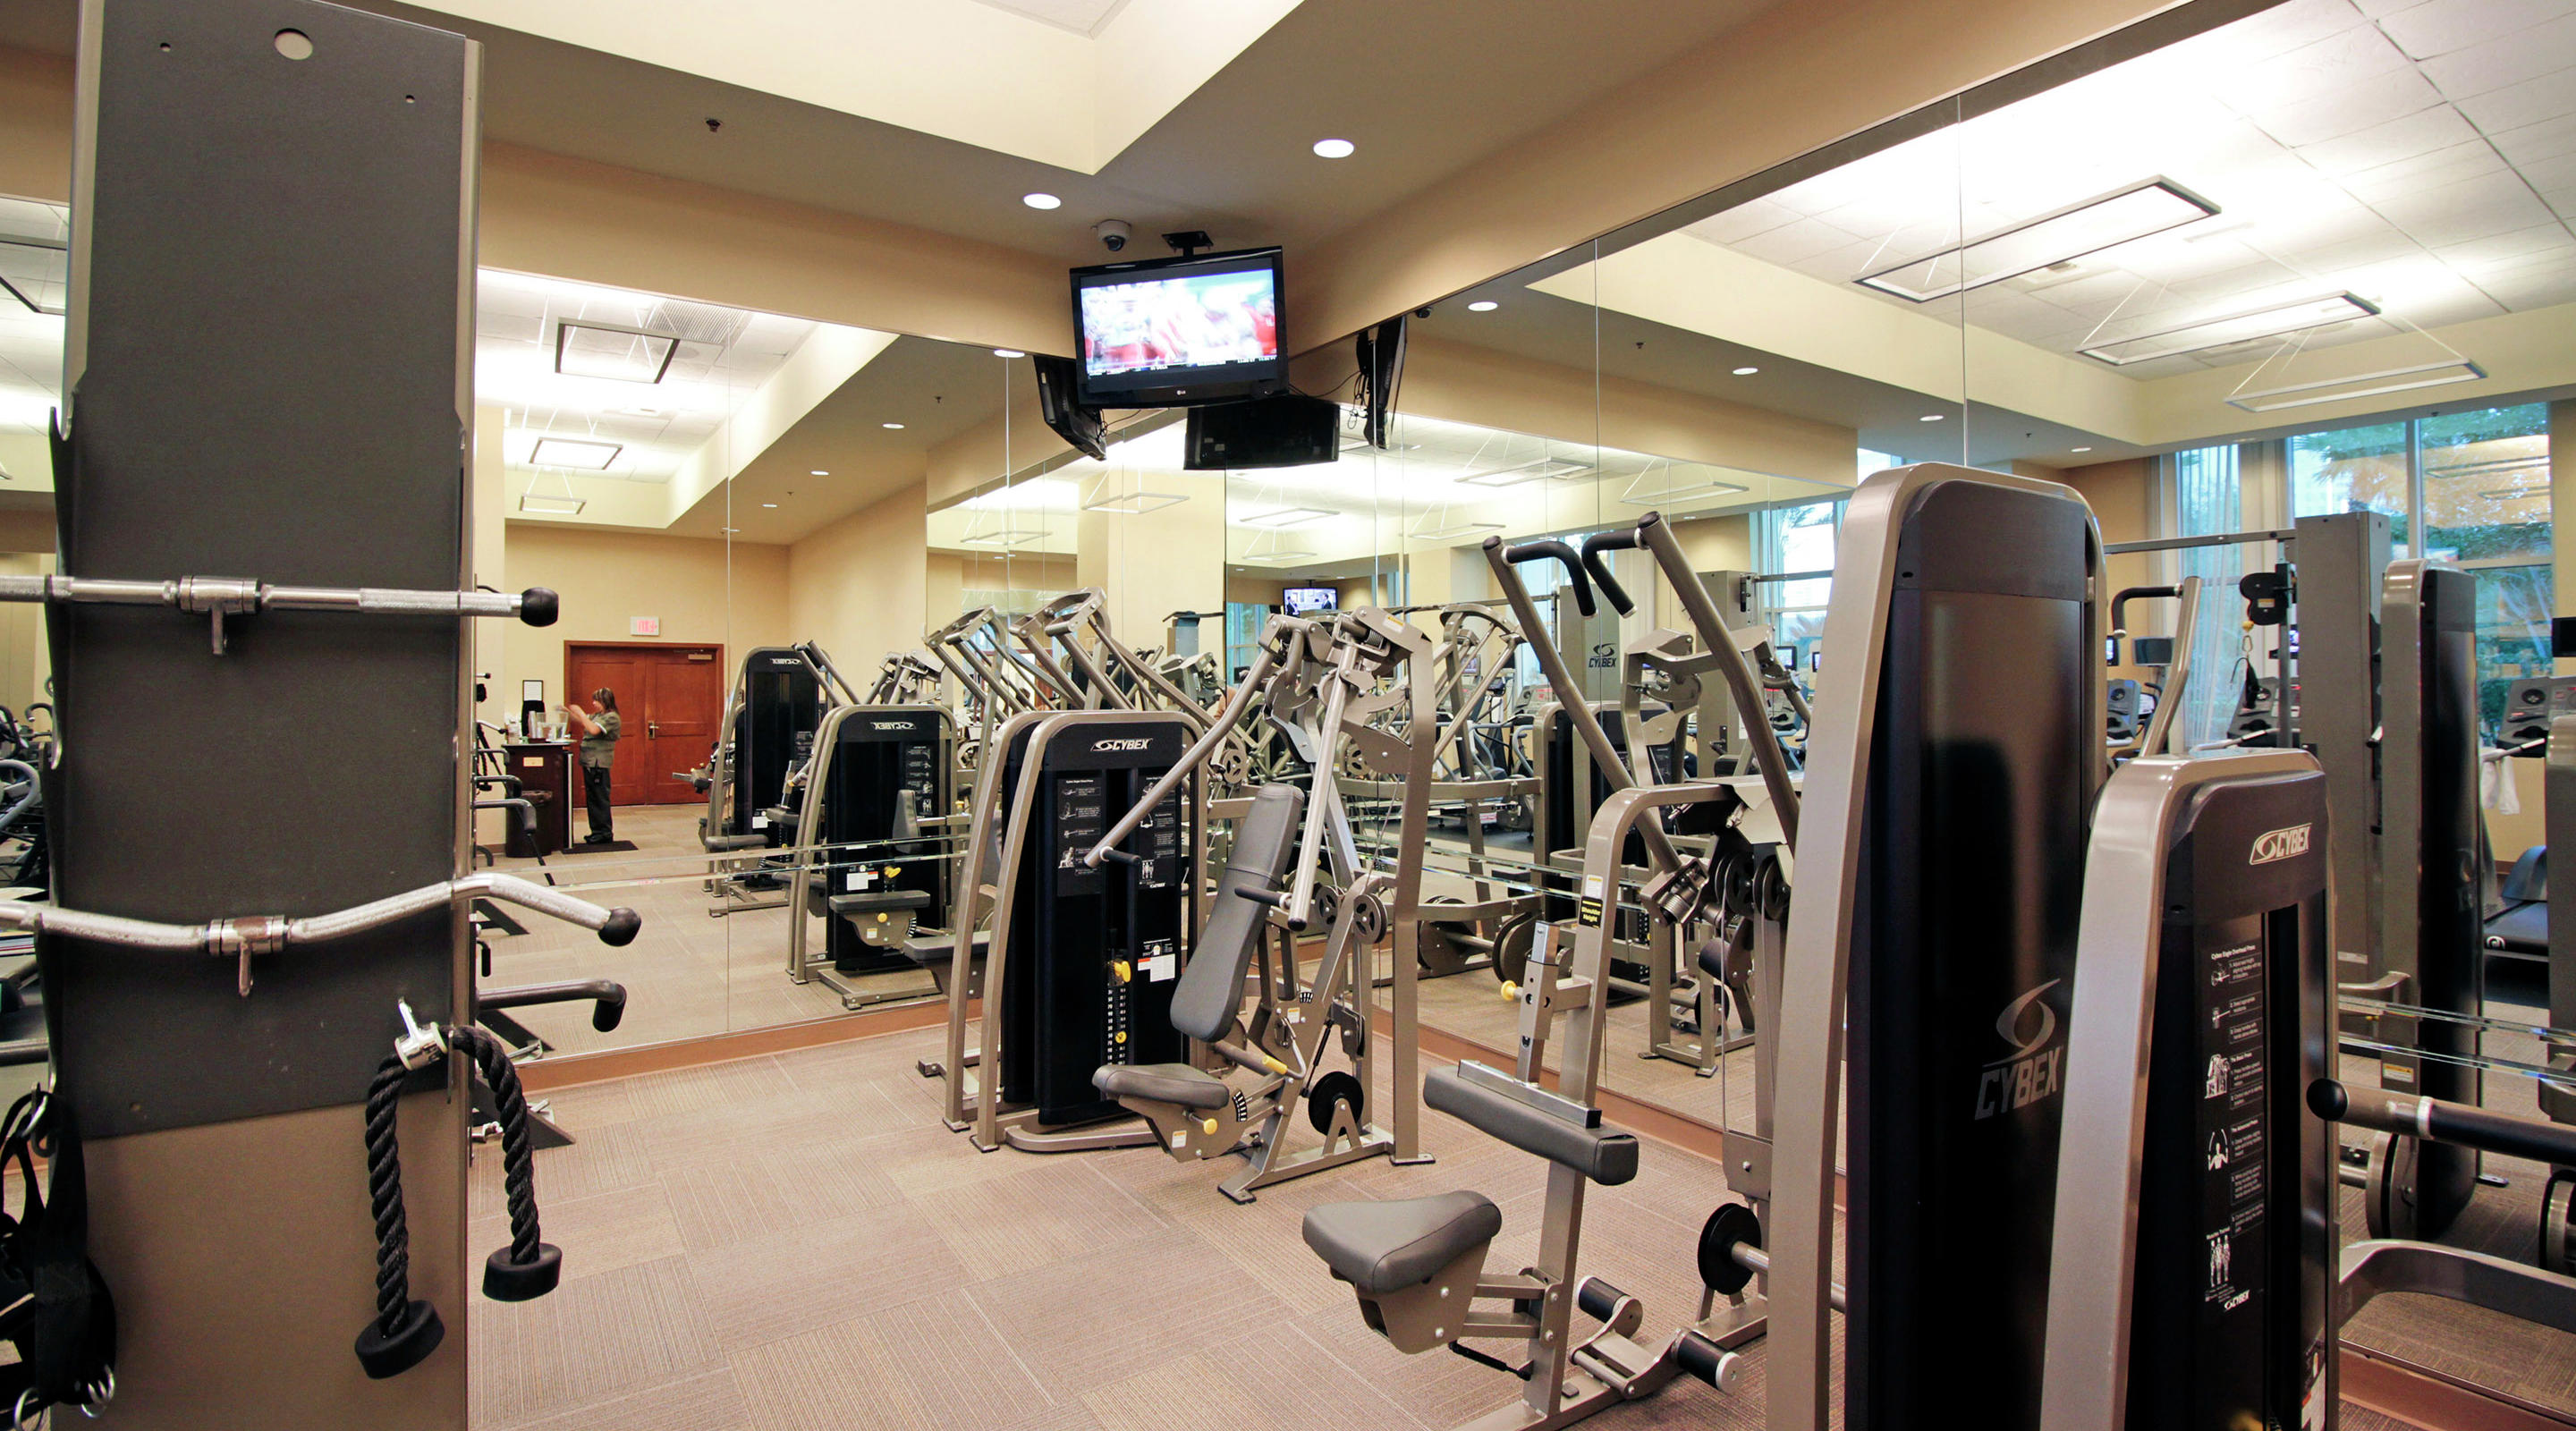 Mgm Grand Spa Fitness Center